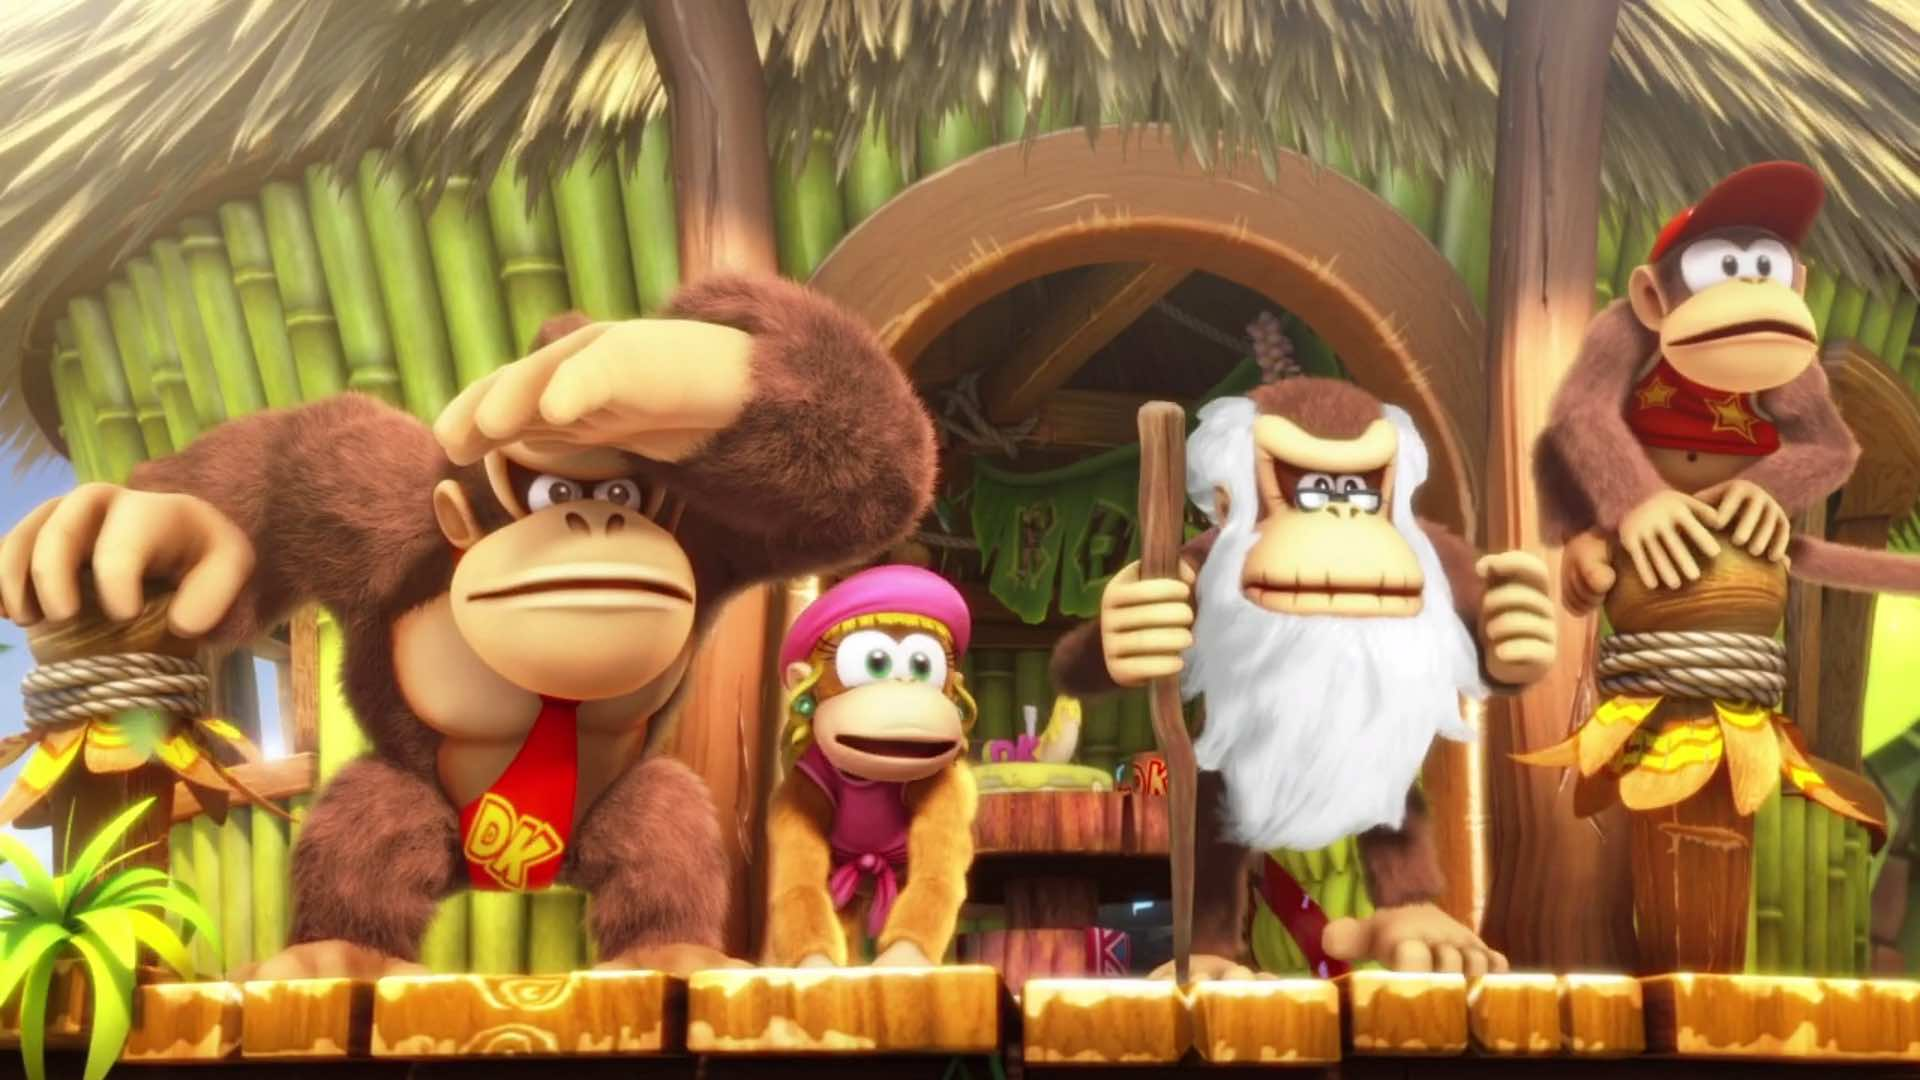 Donkey Kong swinging into Mario + Rabbids: Kingdom Battle on Switch